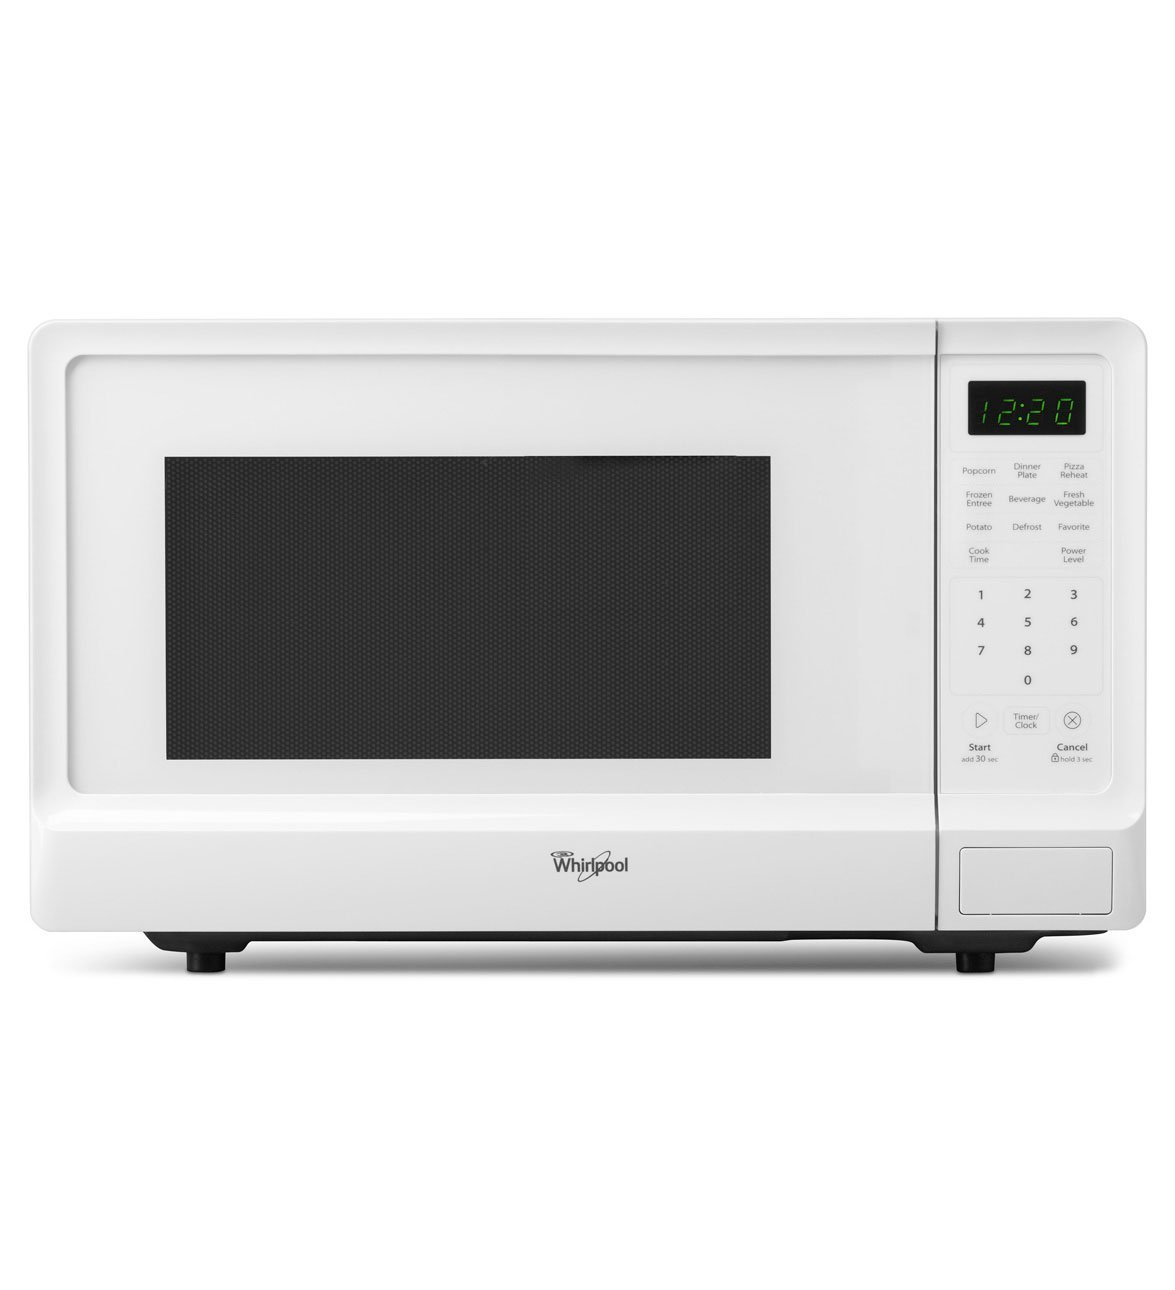 Whirlpool 1.1 CU FT Countertop Microwave - more colors - Master ...